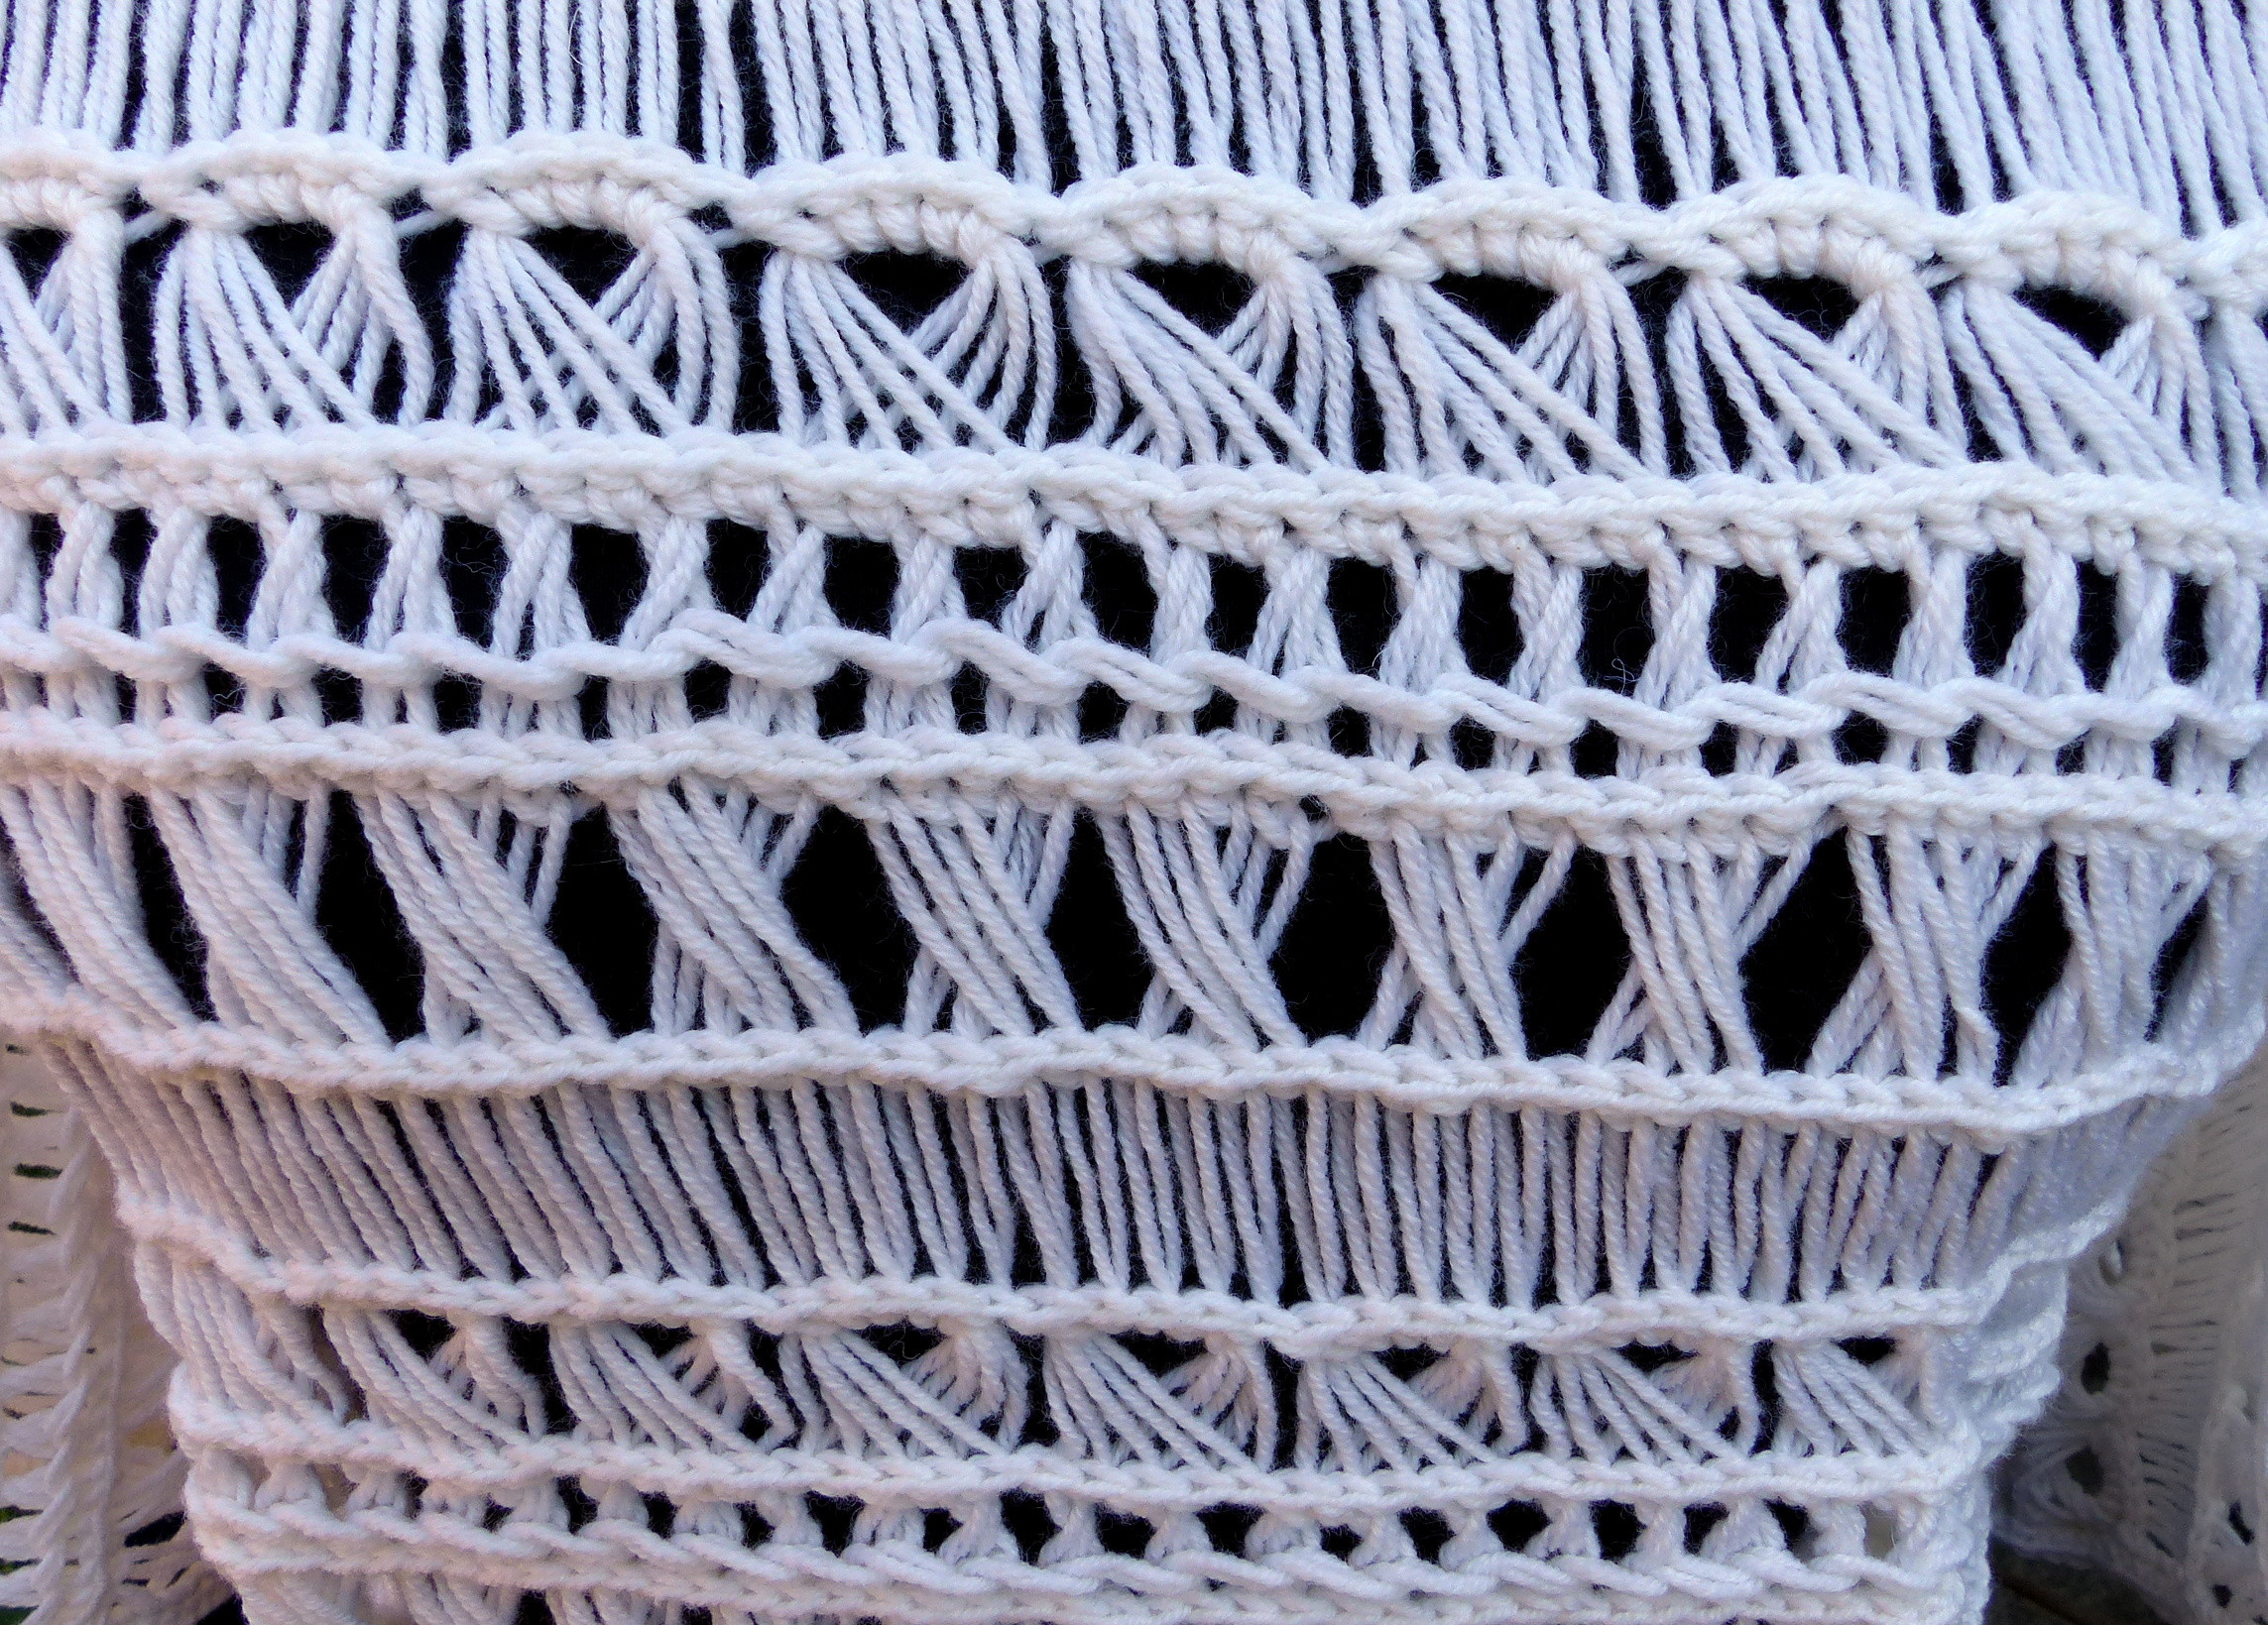 Awesome Fancy Broomstick Lace Stitch Videos Broomstick Crochet Of Amazing 44 Pics Broomstick Crochet